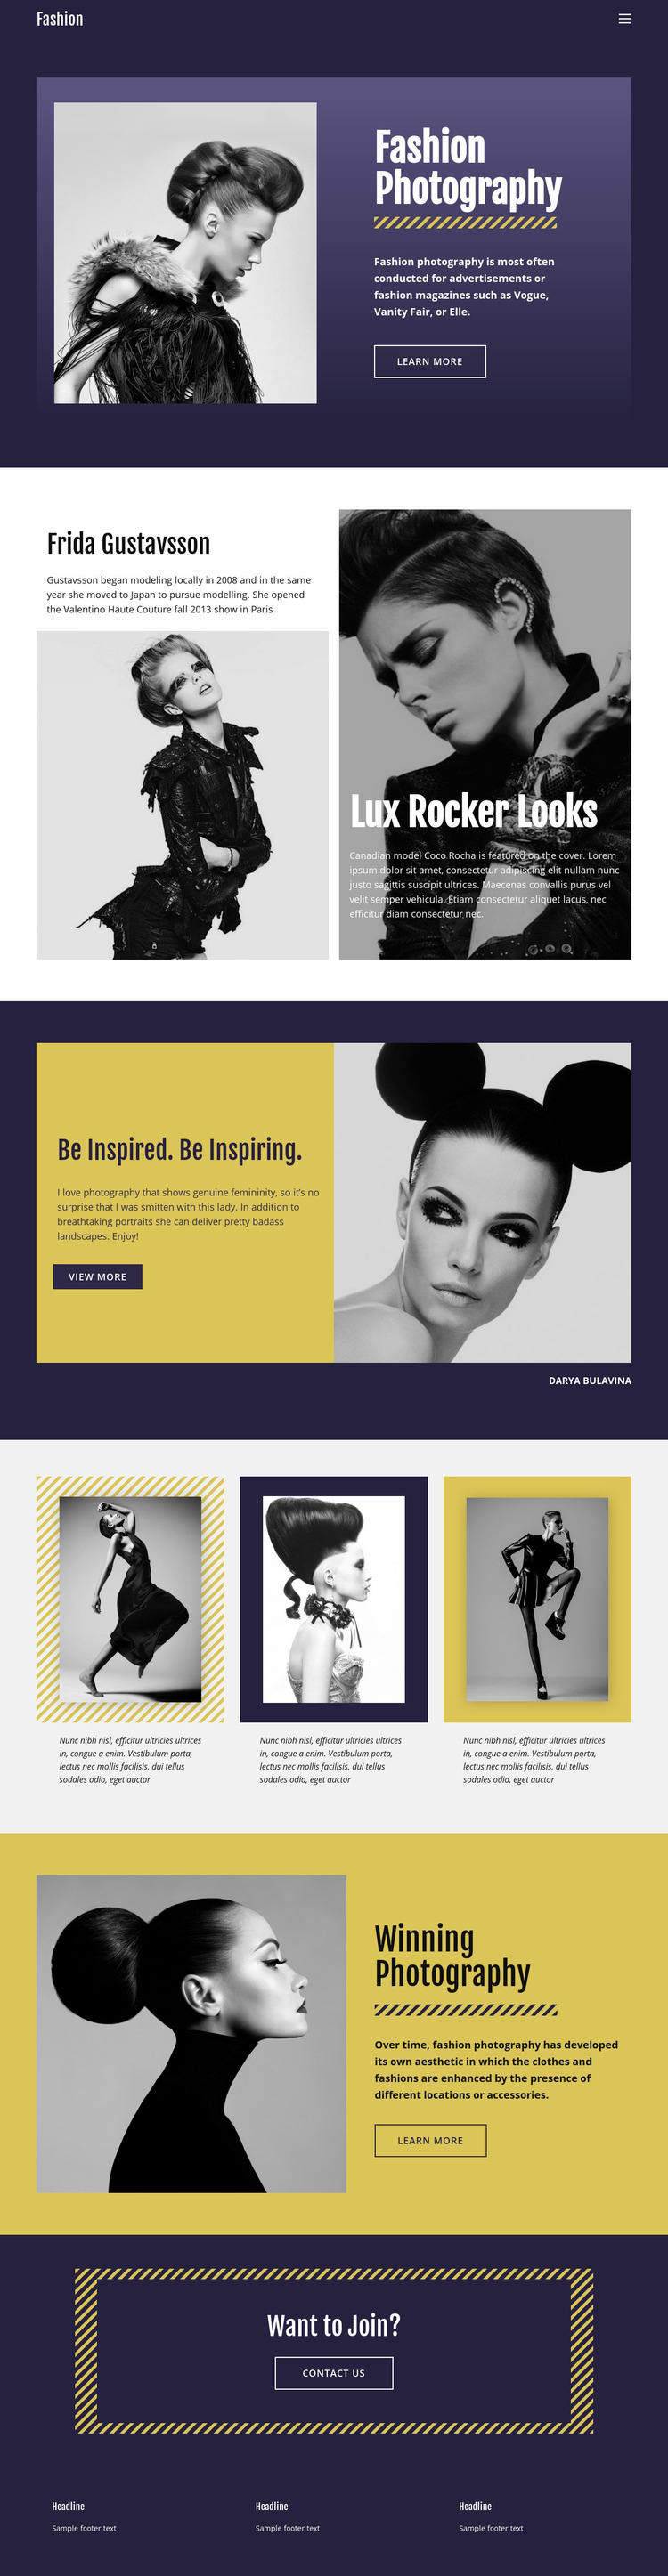 Fashion Photography Classic Style Web Page Design